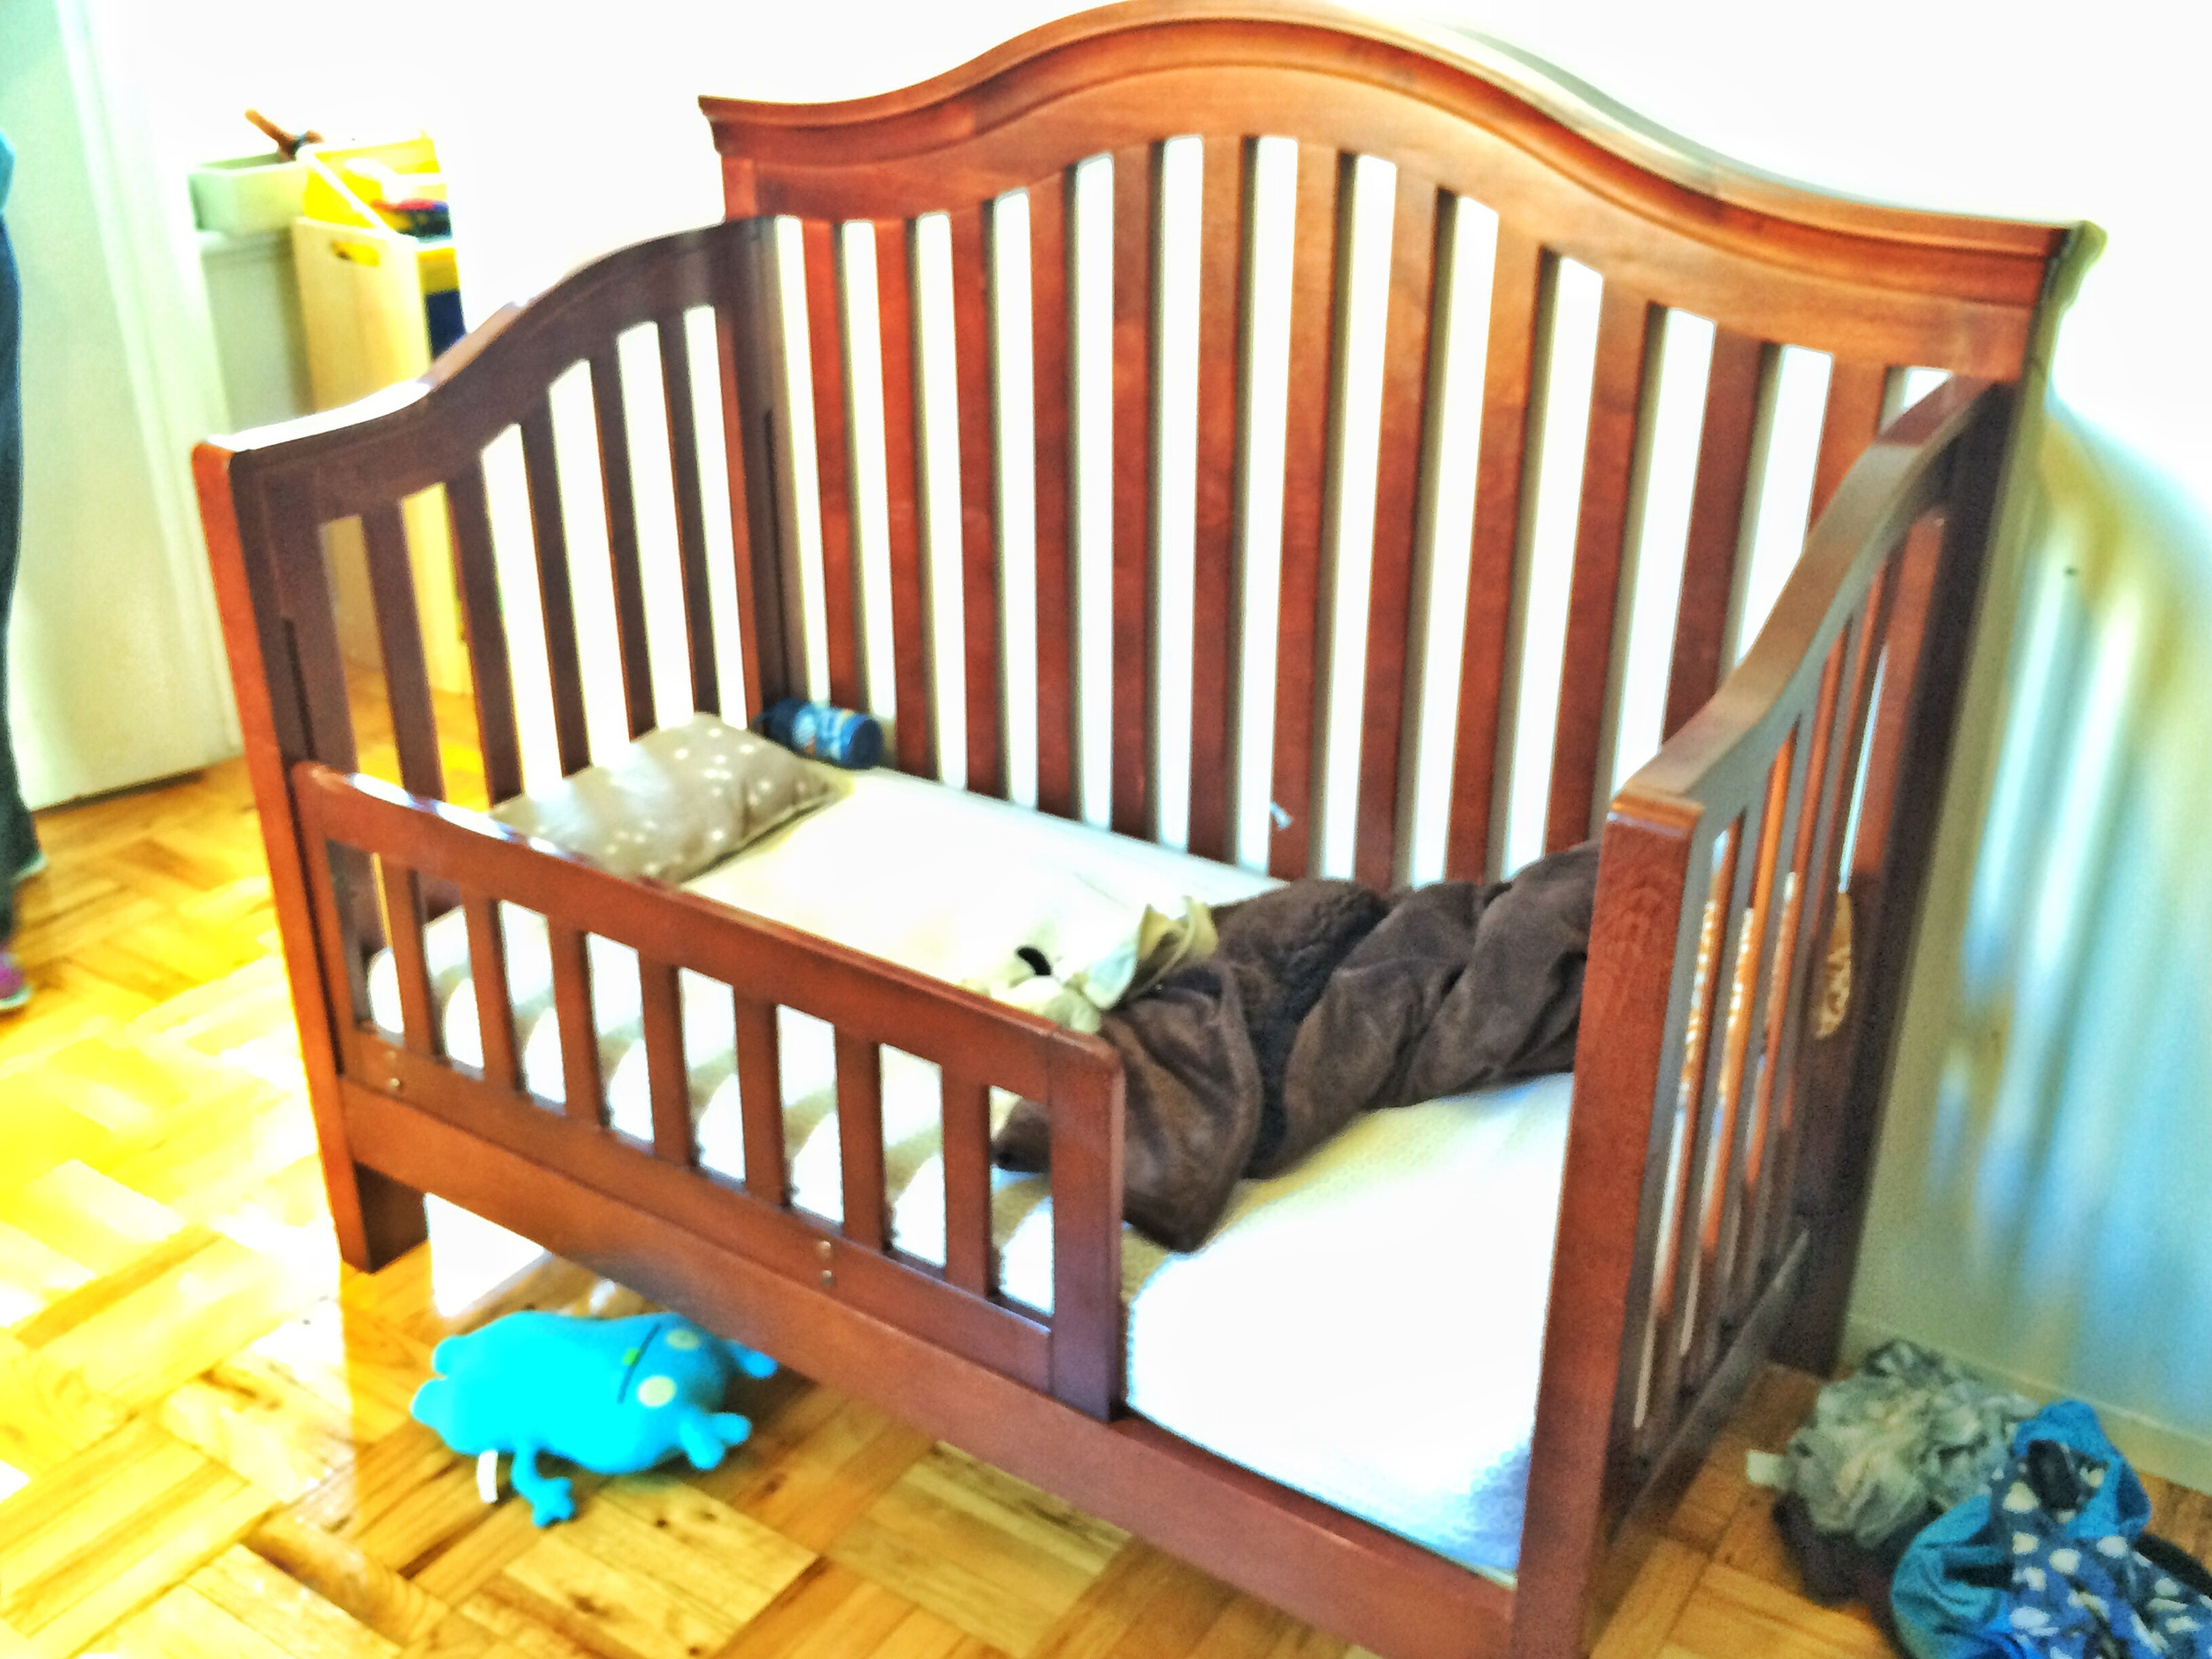 Crib before